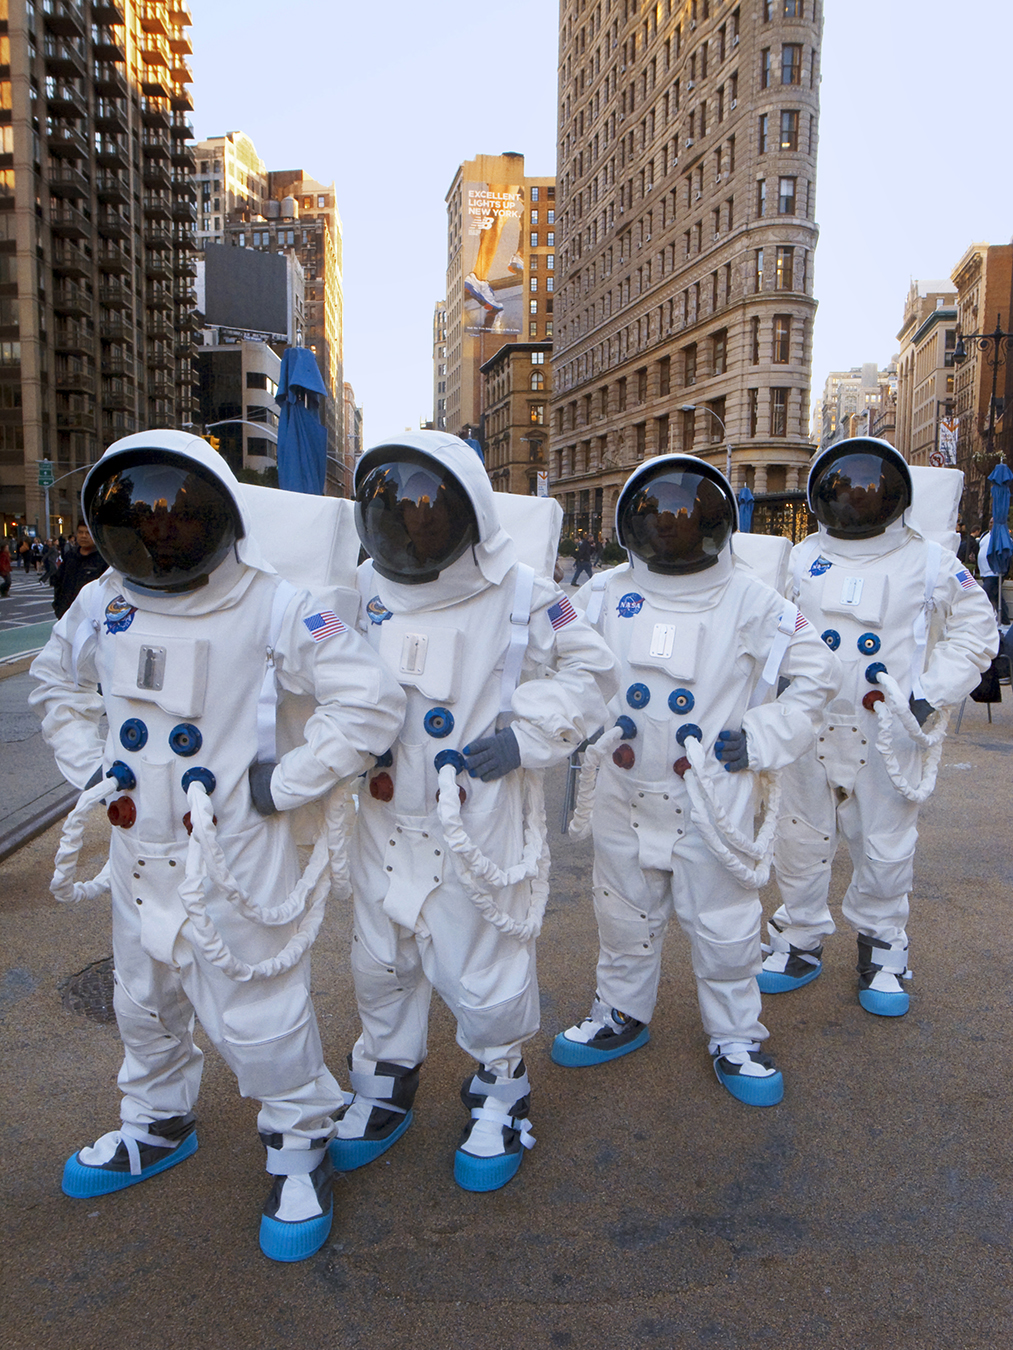 Astronauts on Union Square in New York City (click image to enlarge)